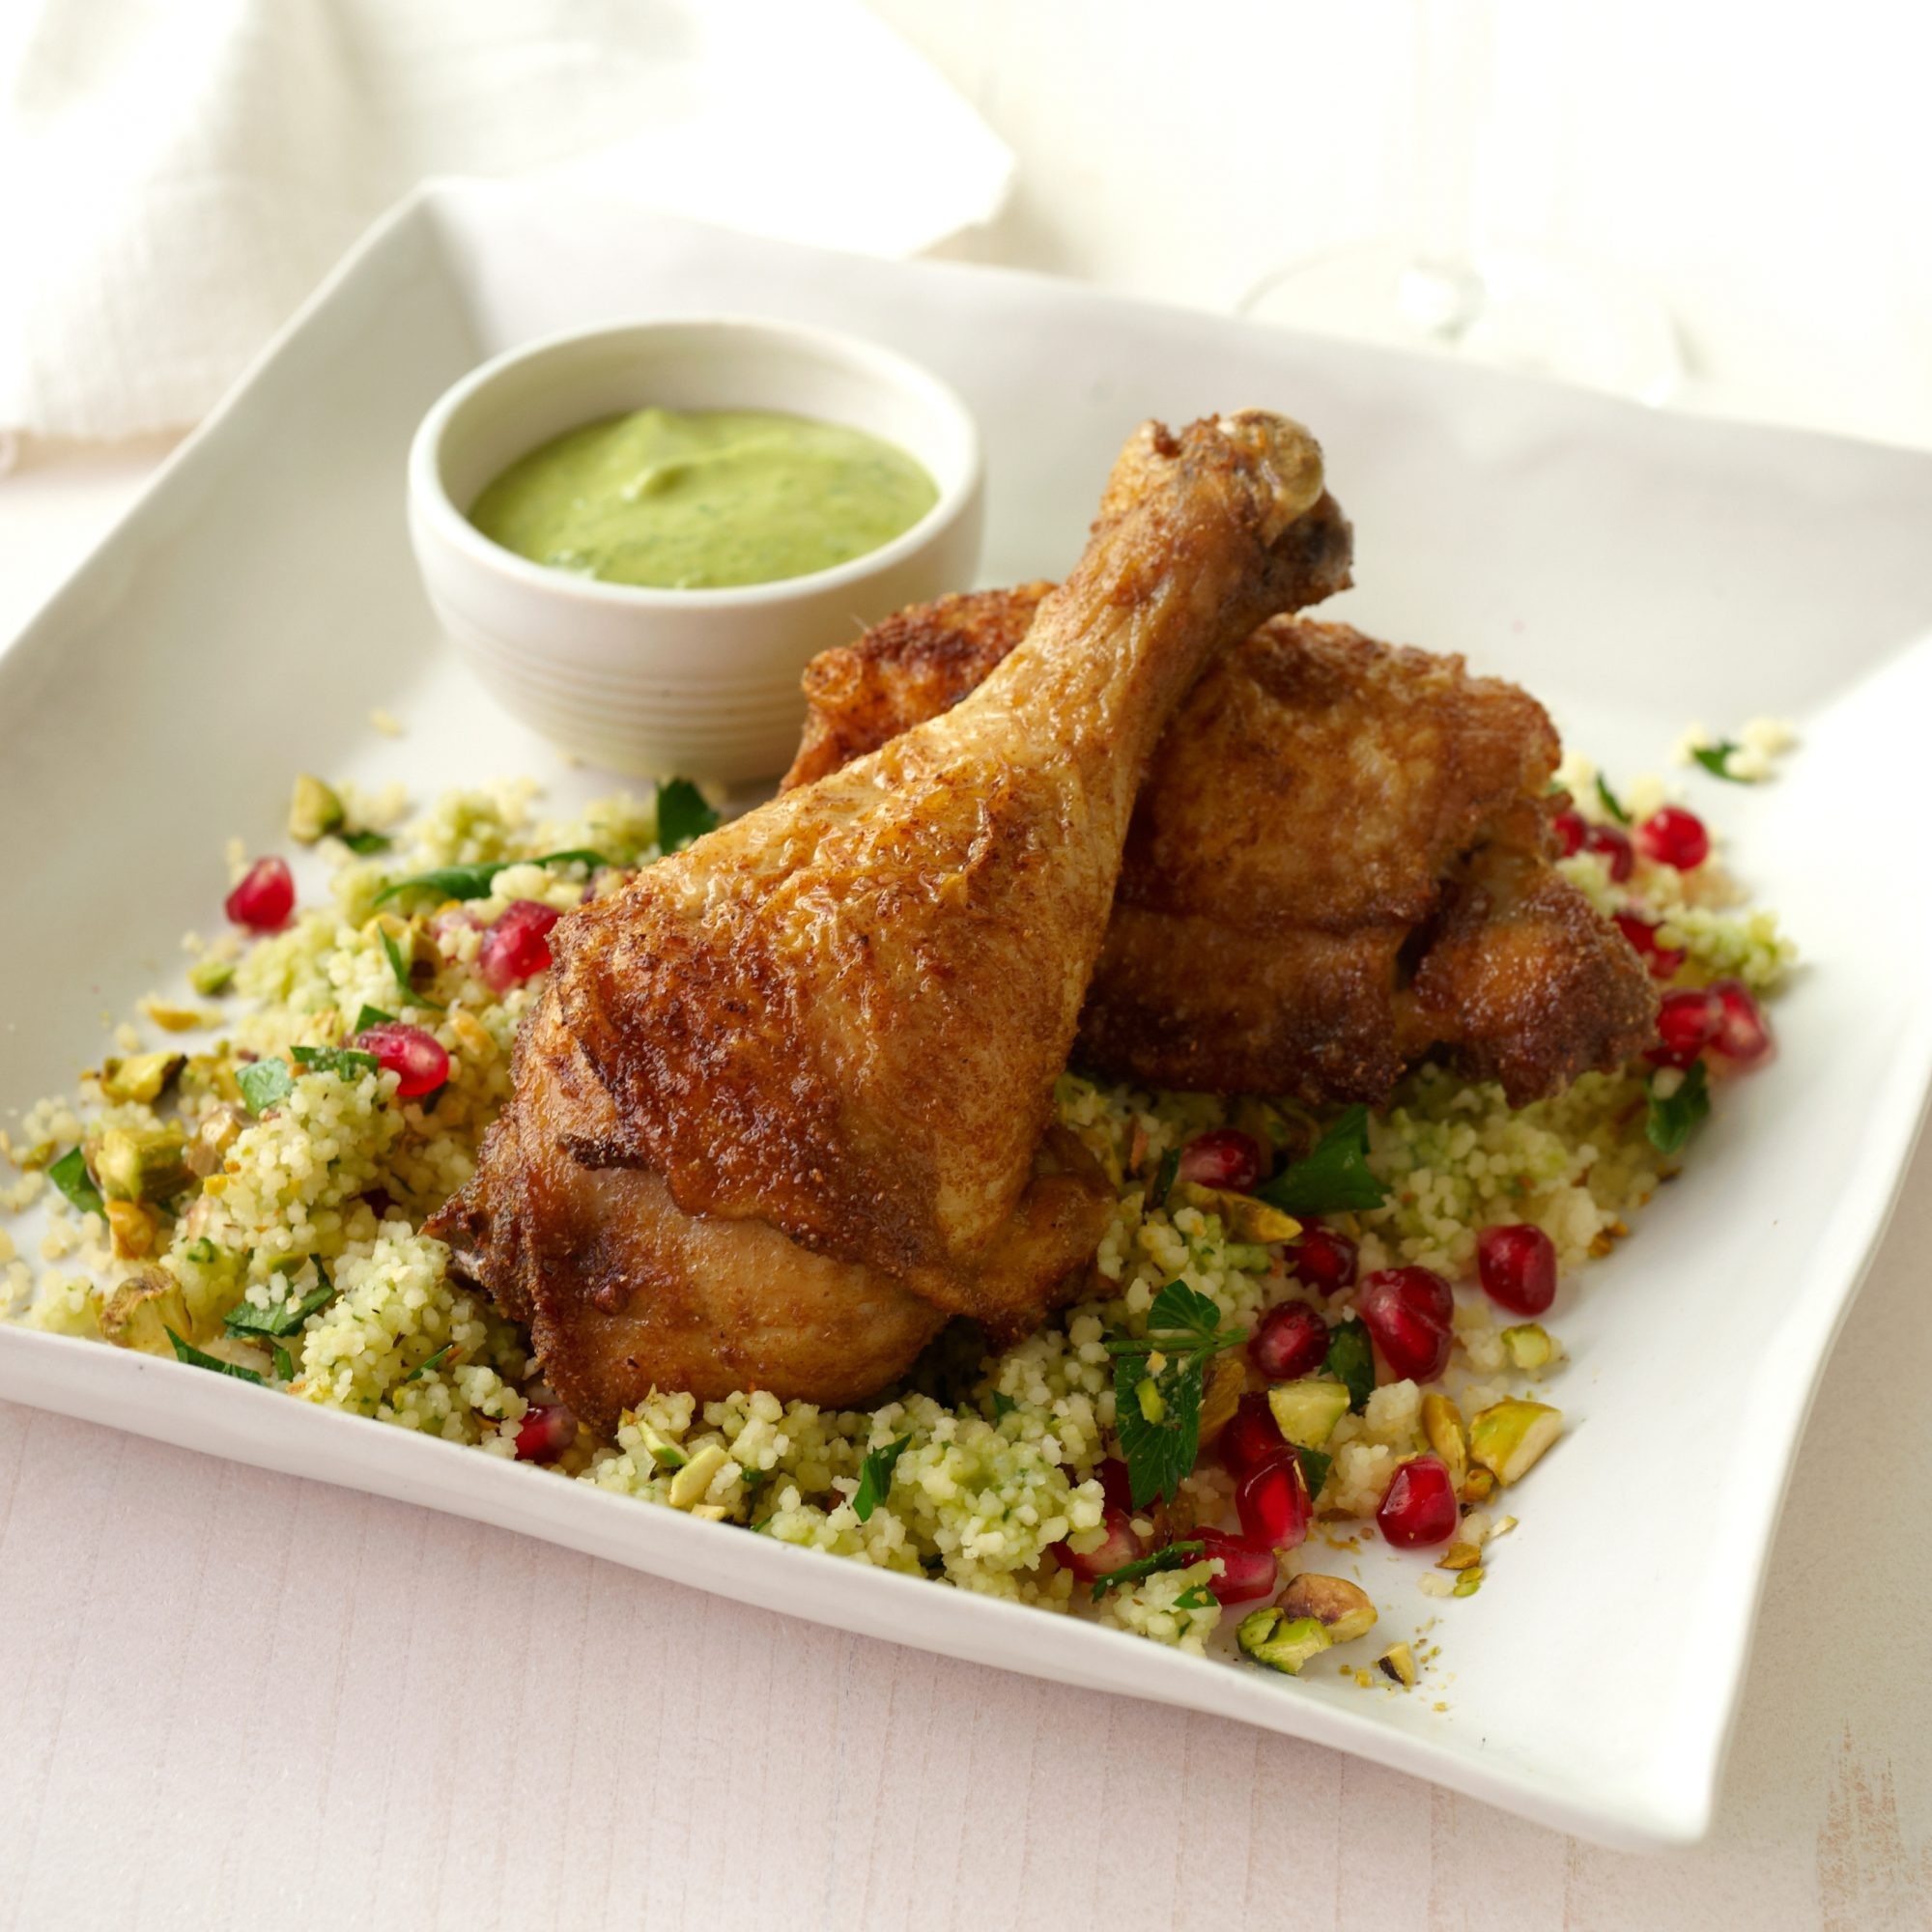 201102-r-crisp-spiced-chicken.jpg